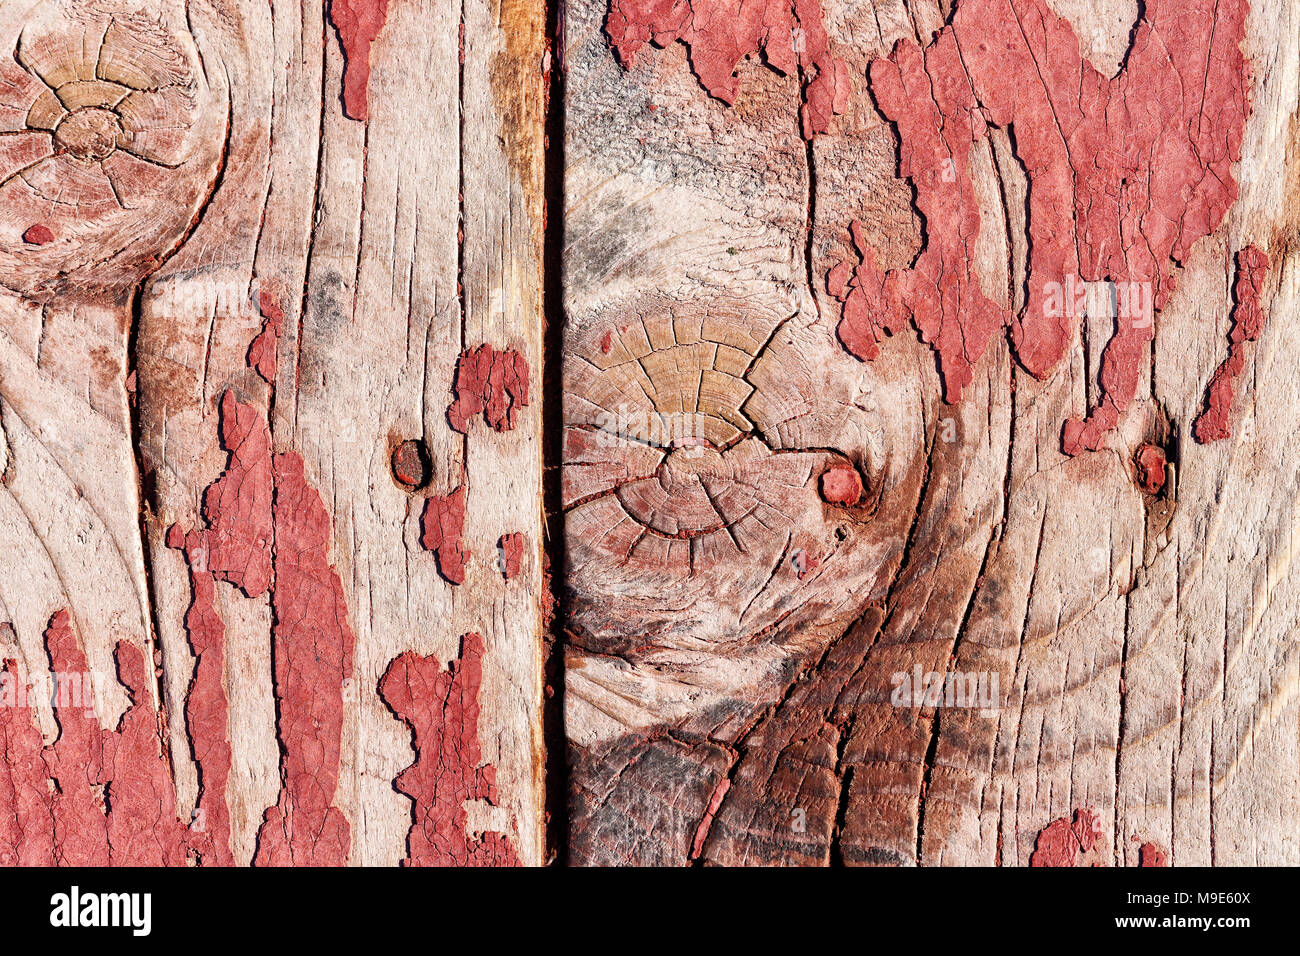 Grunge weathered wooden planks texture with a remnants of red paint, knots, snags and nail heads. Rich structure - Stock Image